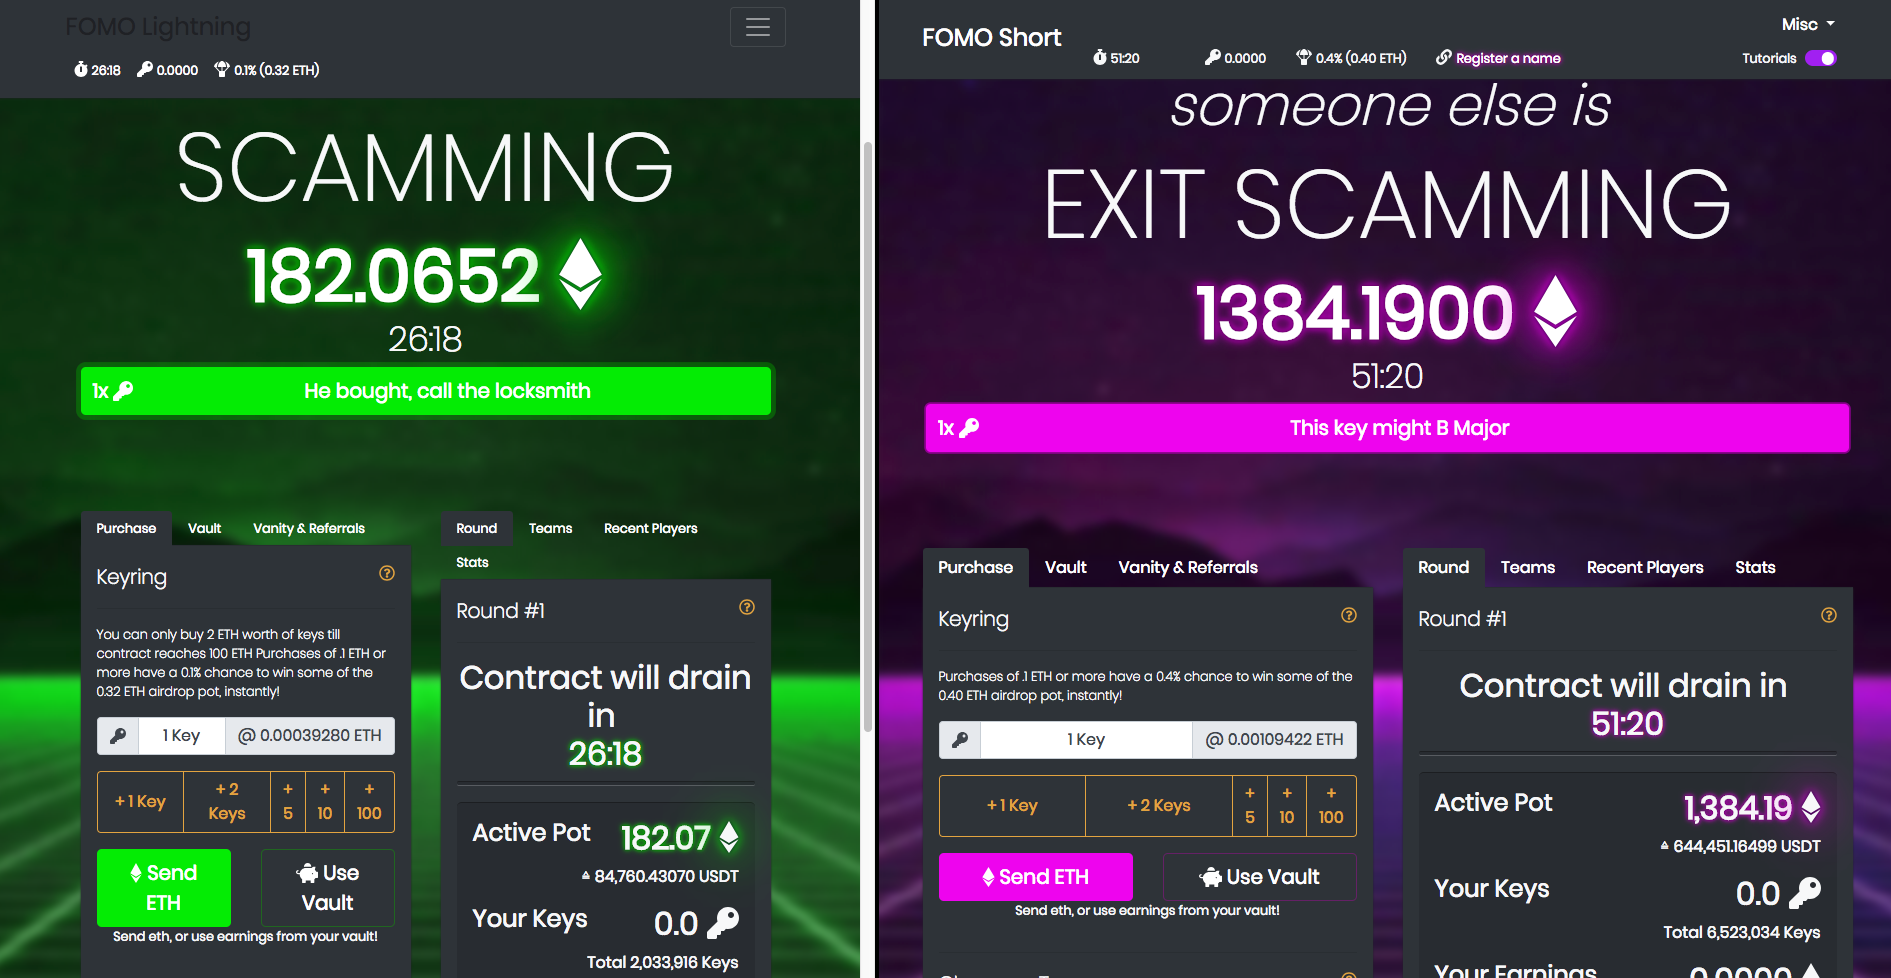 FOMO Short and FOMO Lightning next to each other (Source: Company Websites: Left: FOMO Lightning. and right FOMO Short)